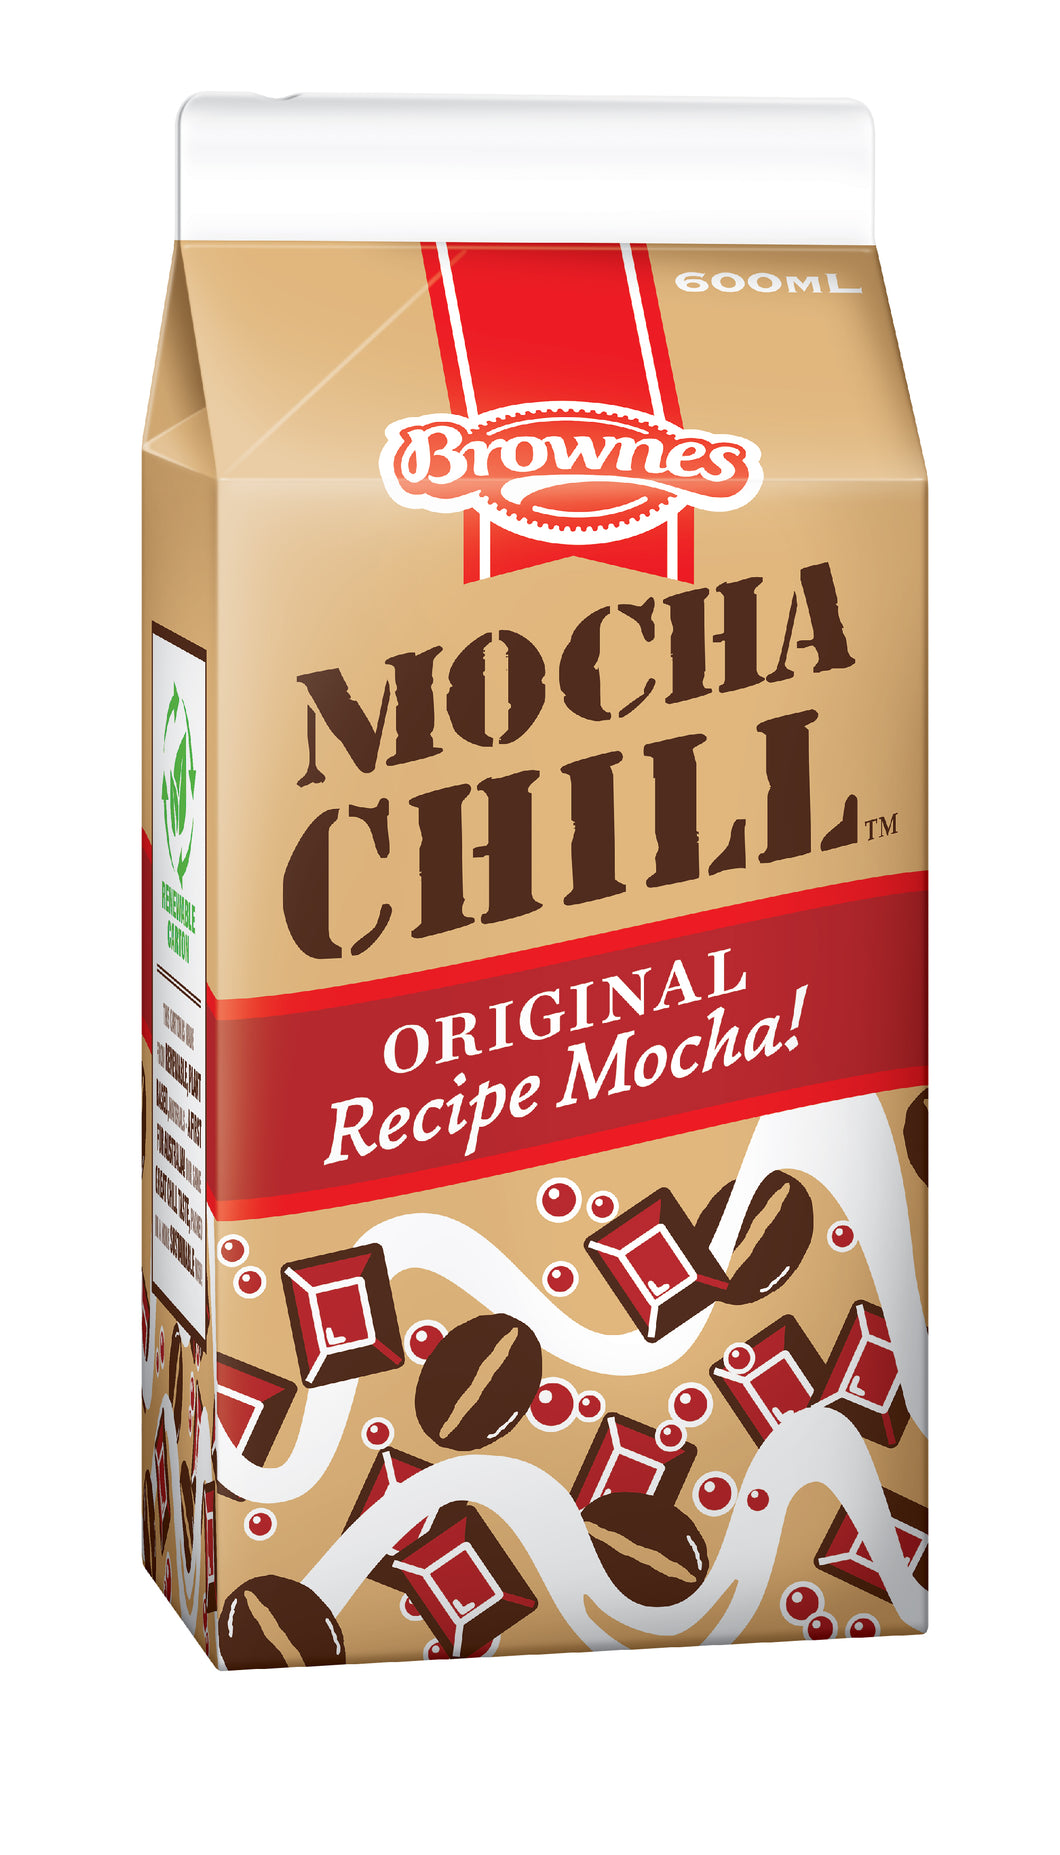 Original Recipe Mocha CHILL 600mL